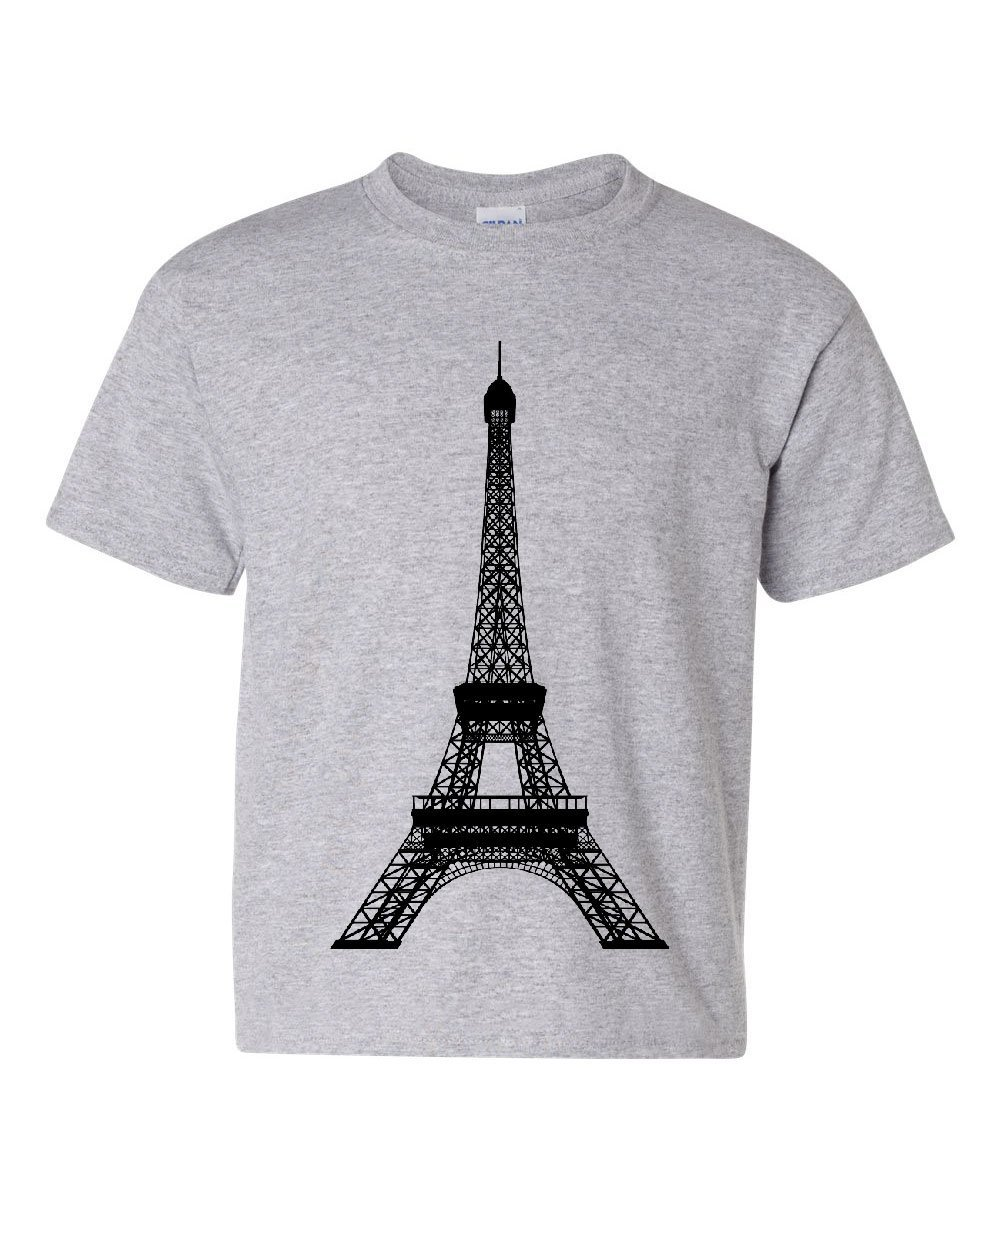 Eiffel Tower Youth T-Shirt Paris France Sightseeing Travel Europe Kids Tee Gray M